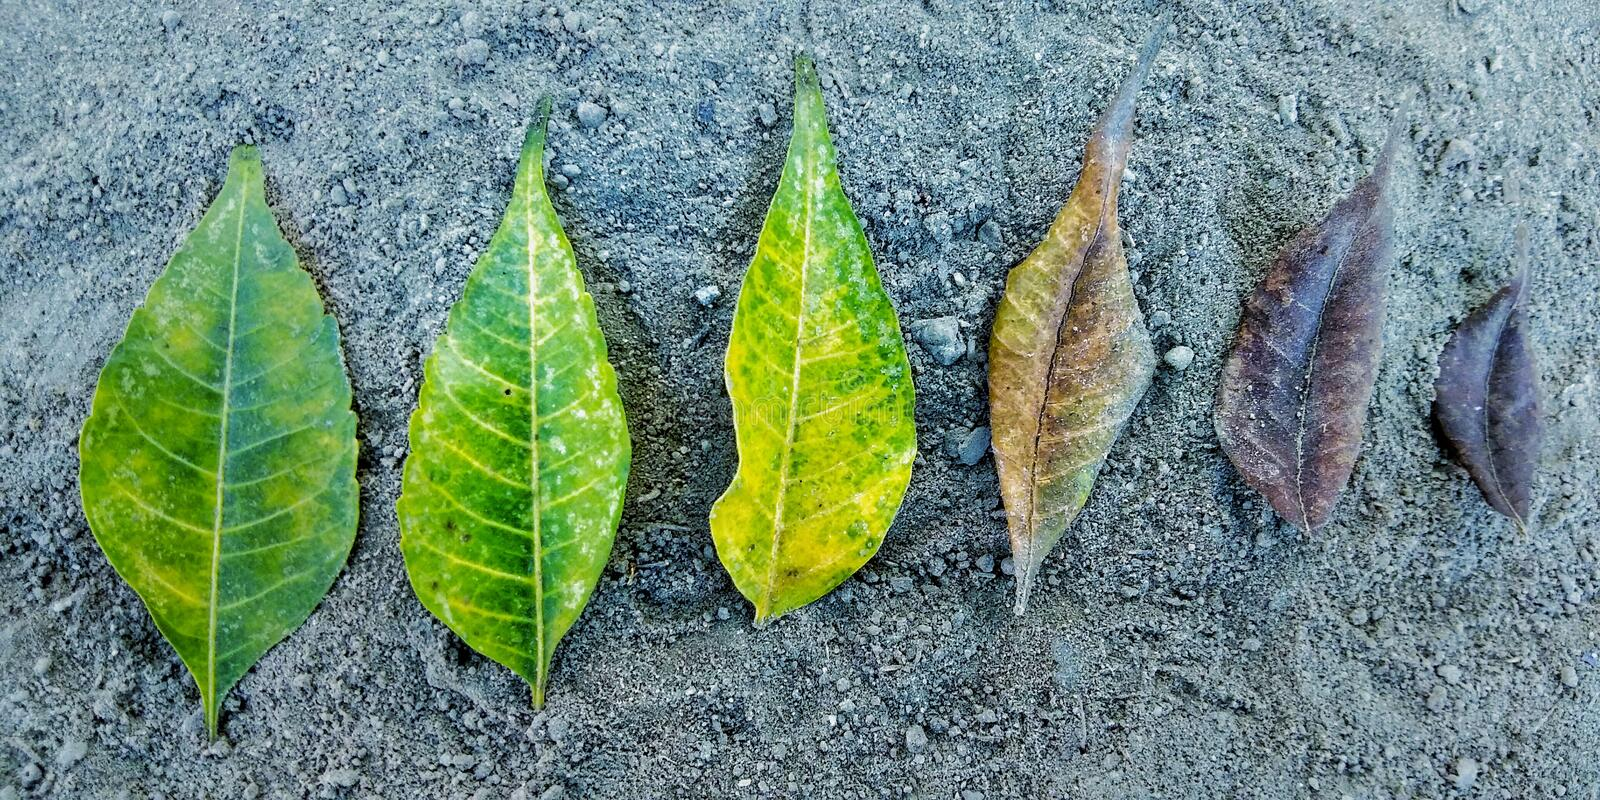 Leaf life cycle closeup image. Leaf life cycle with closeup image. Story telling image. Life of leaves royalty free stock photography